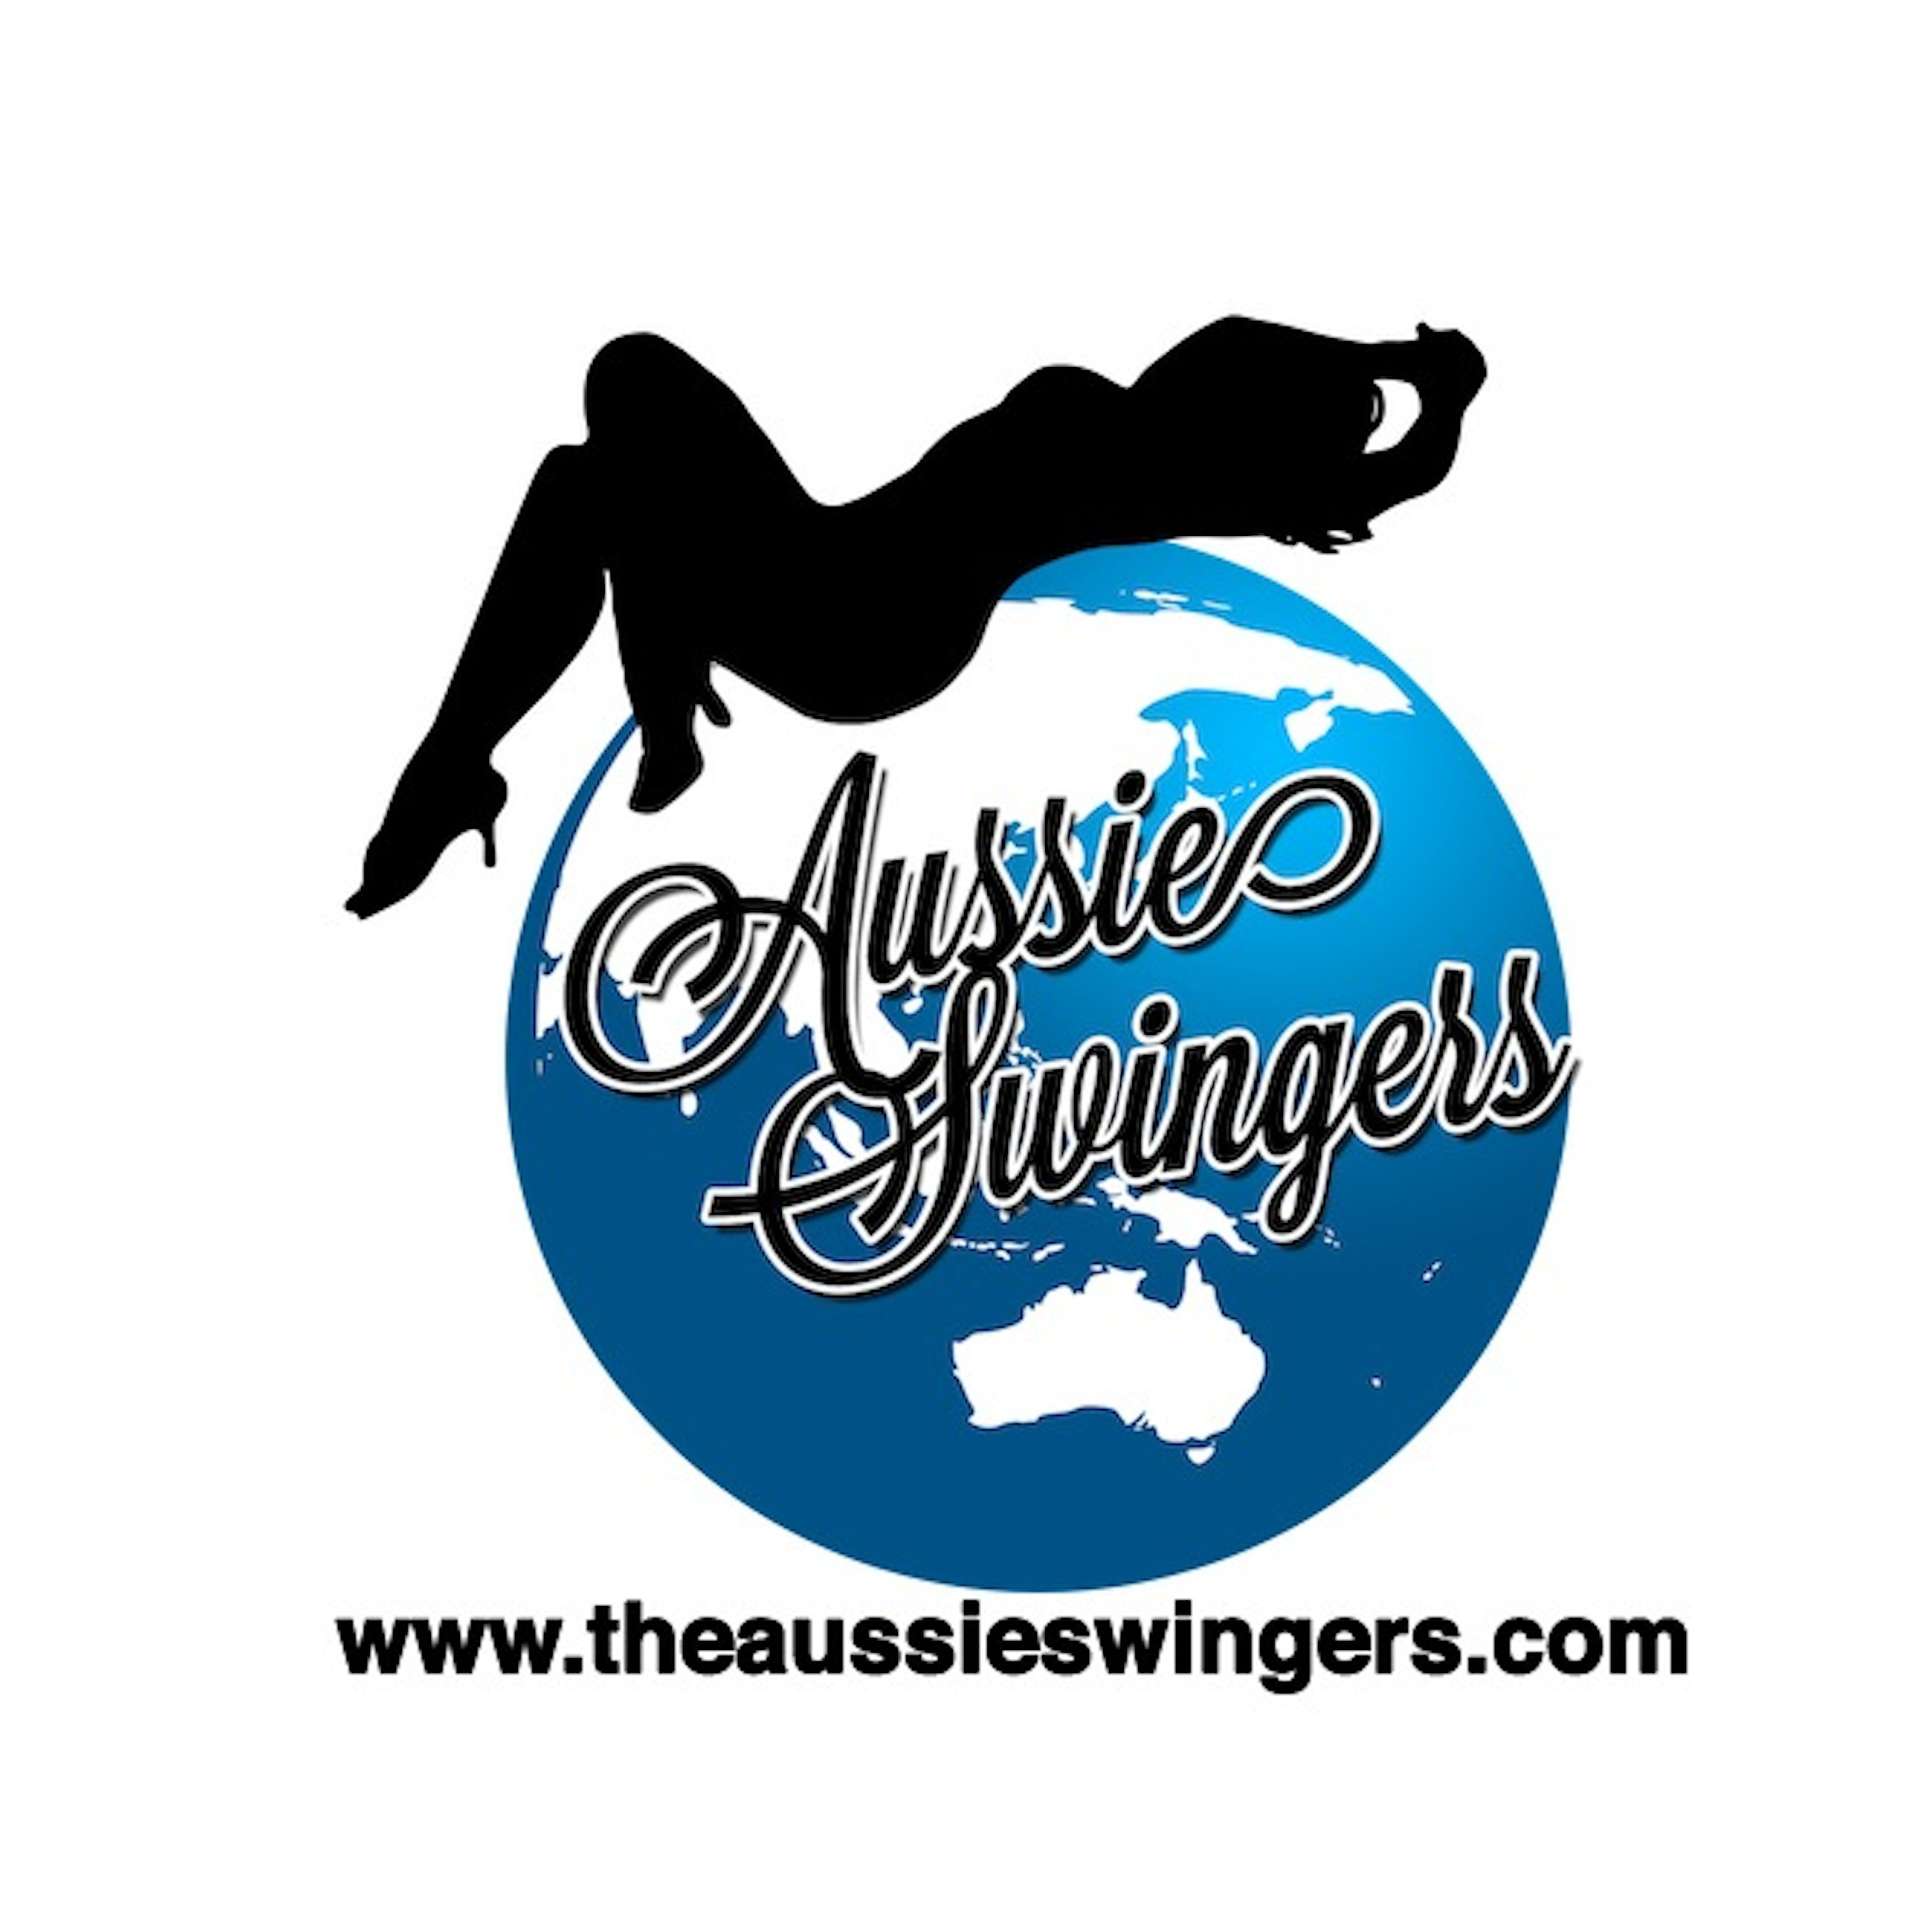 The Aussie Swingers. We Swing Around the World!